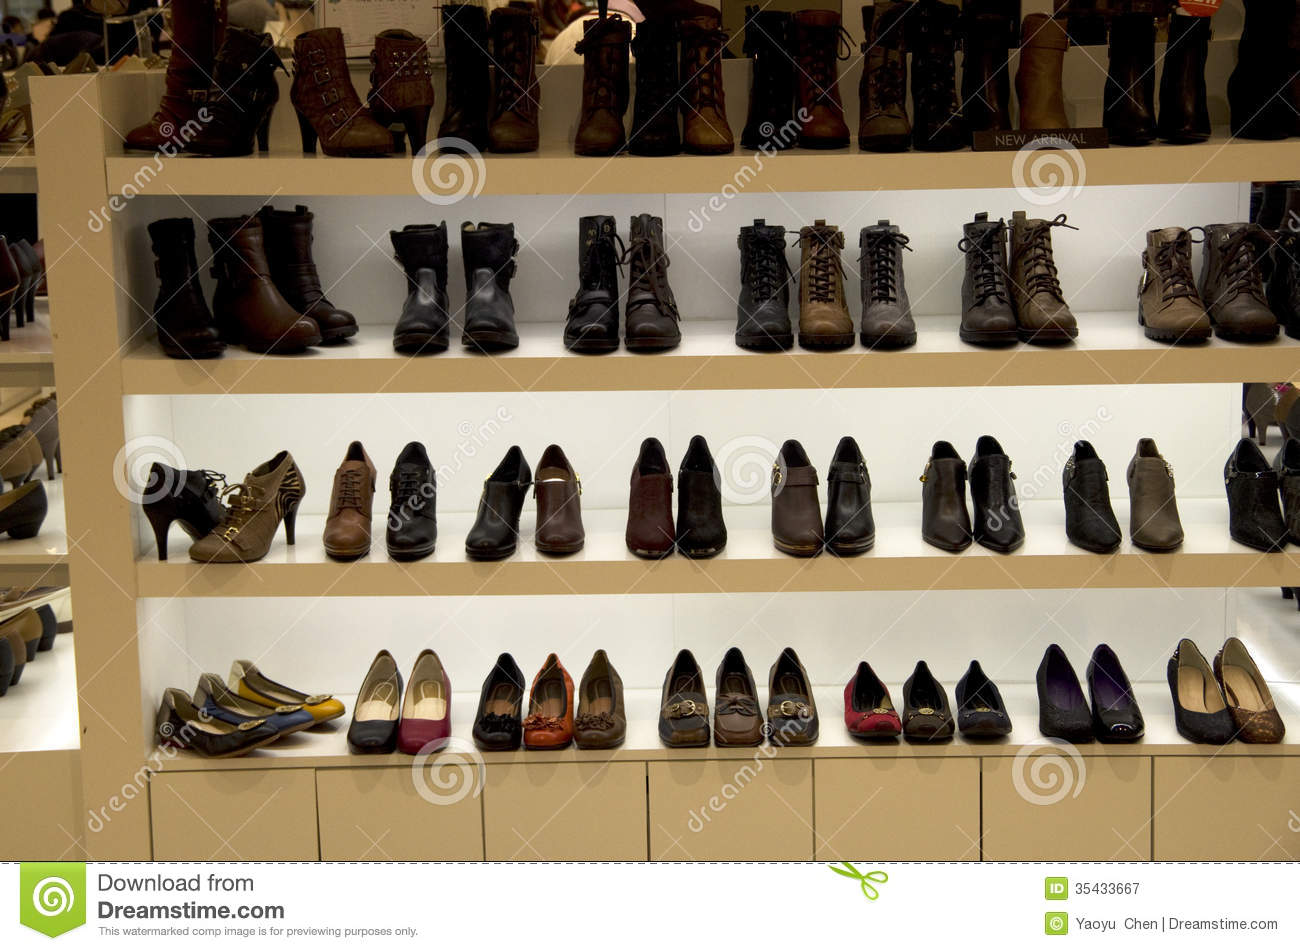 Shoes in Stock